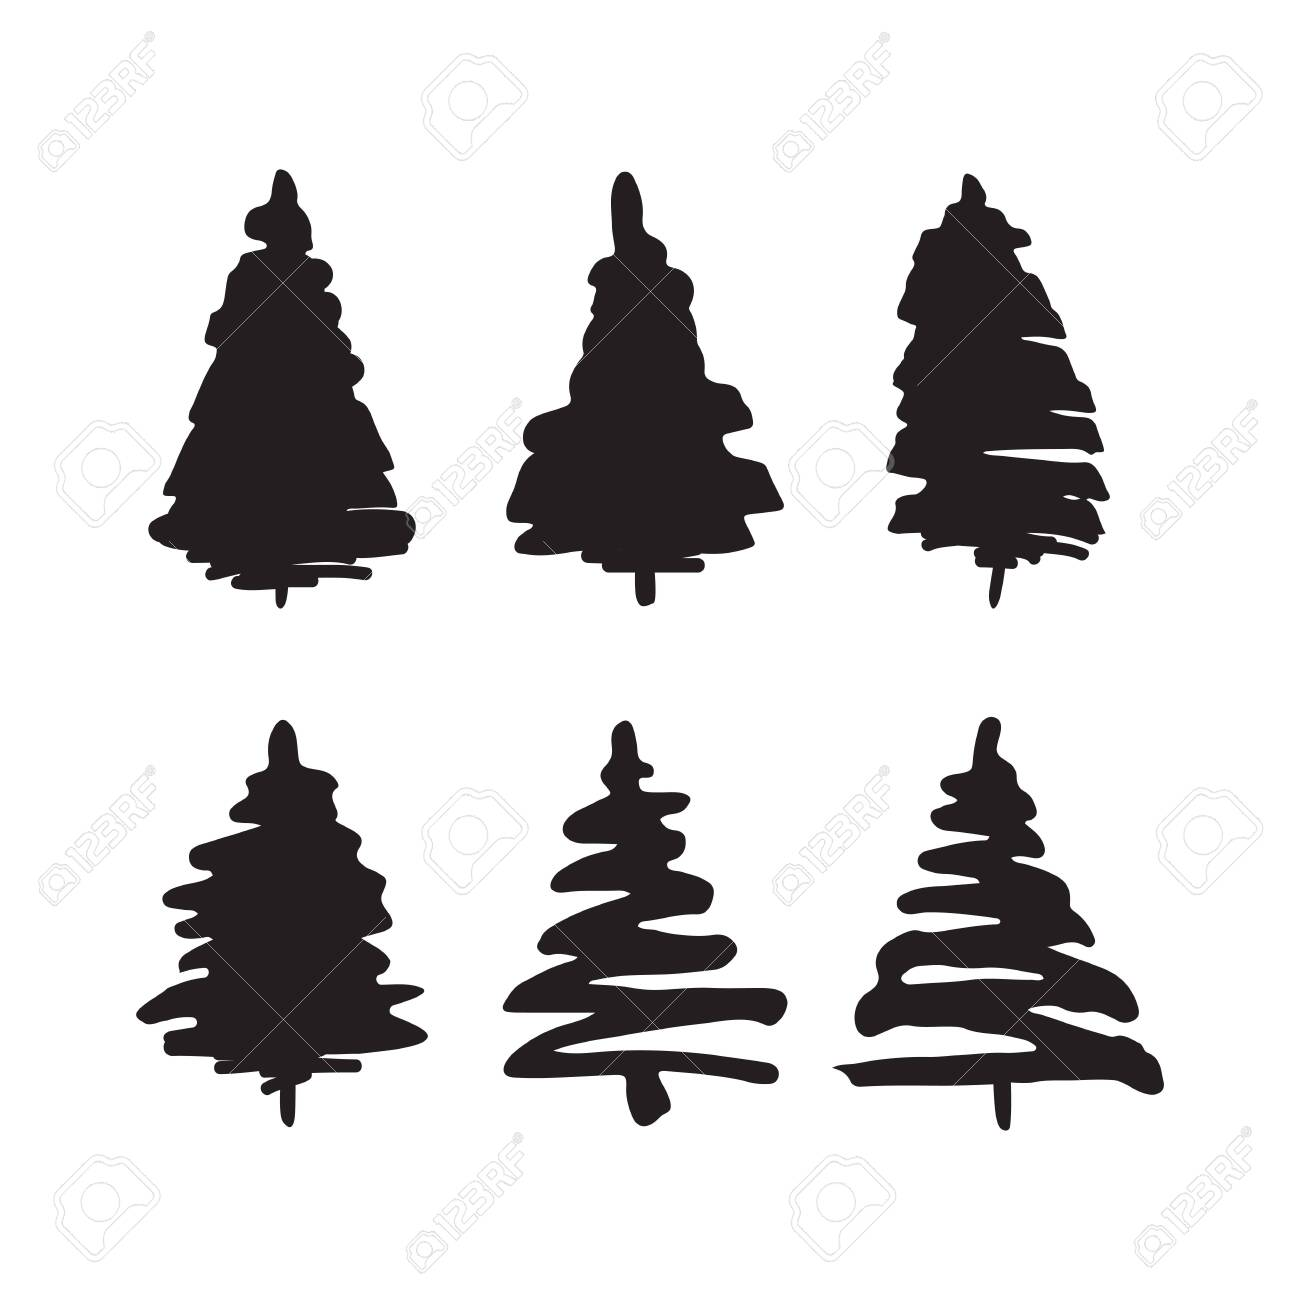 Christmas Trees Silhouette.Abstract Christmas Trees Fir Tree Silhouette Isolated On White